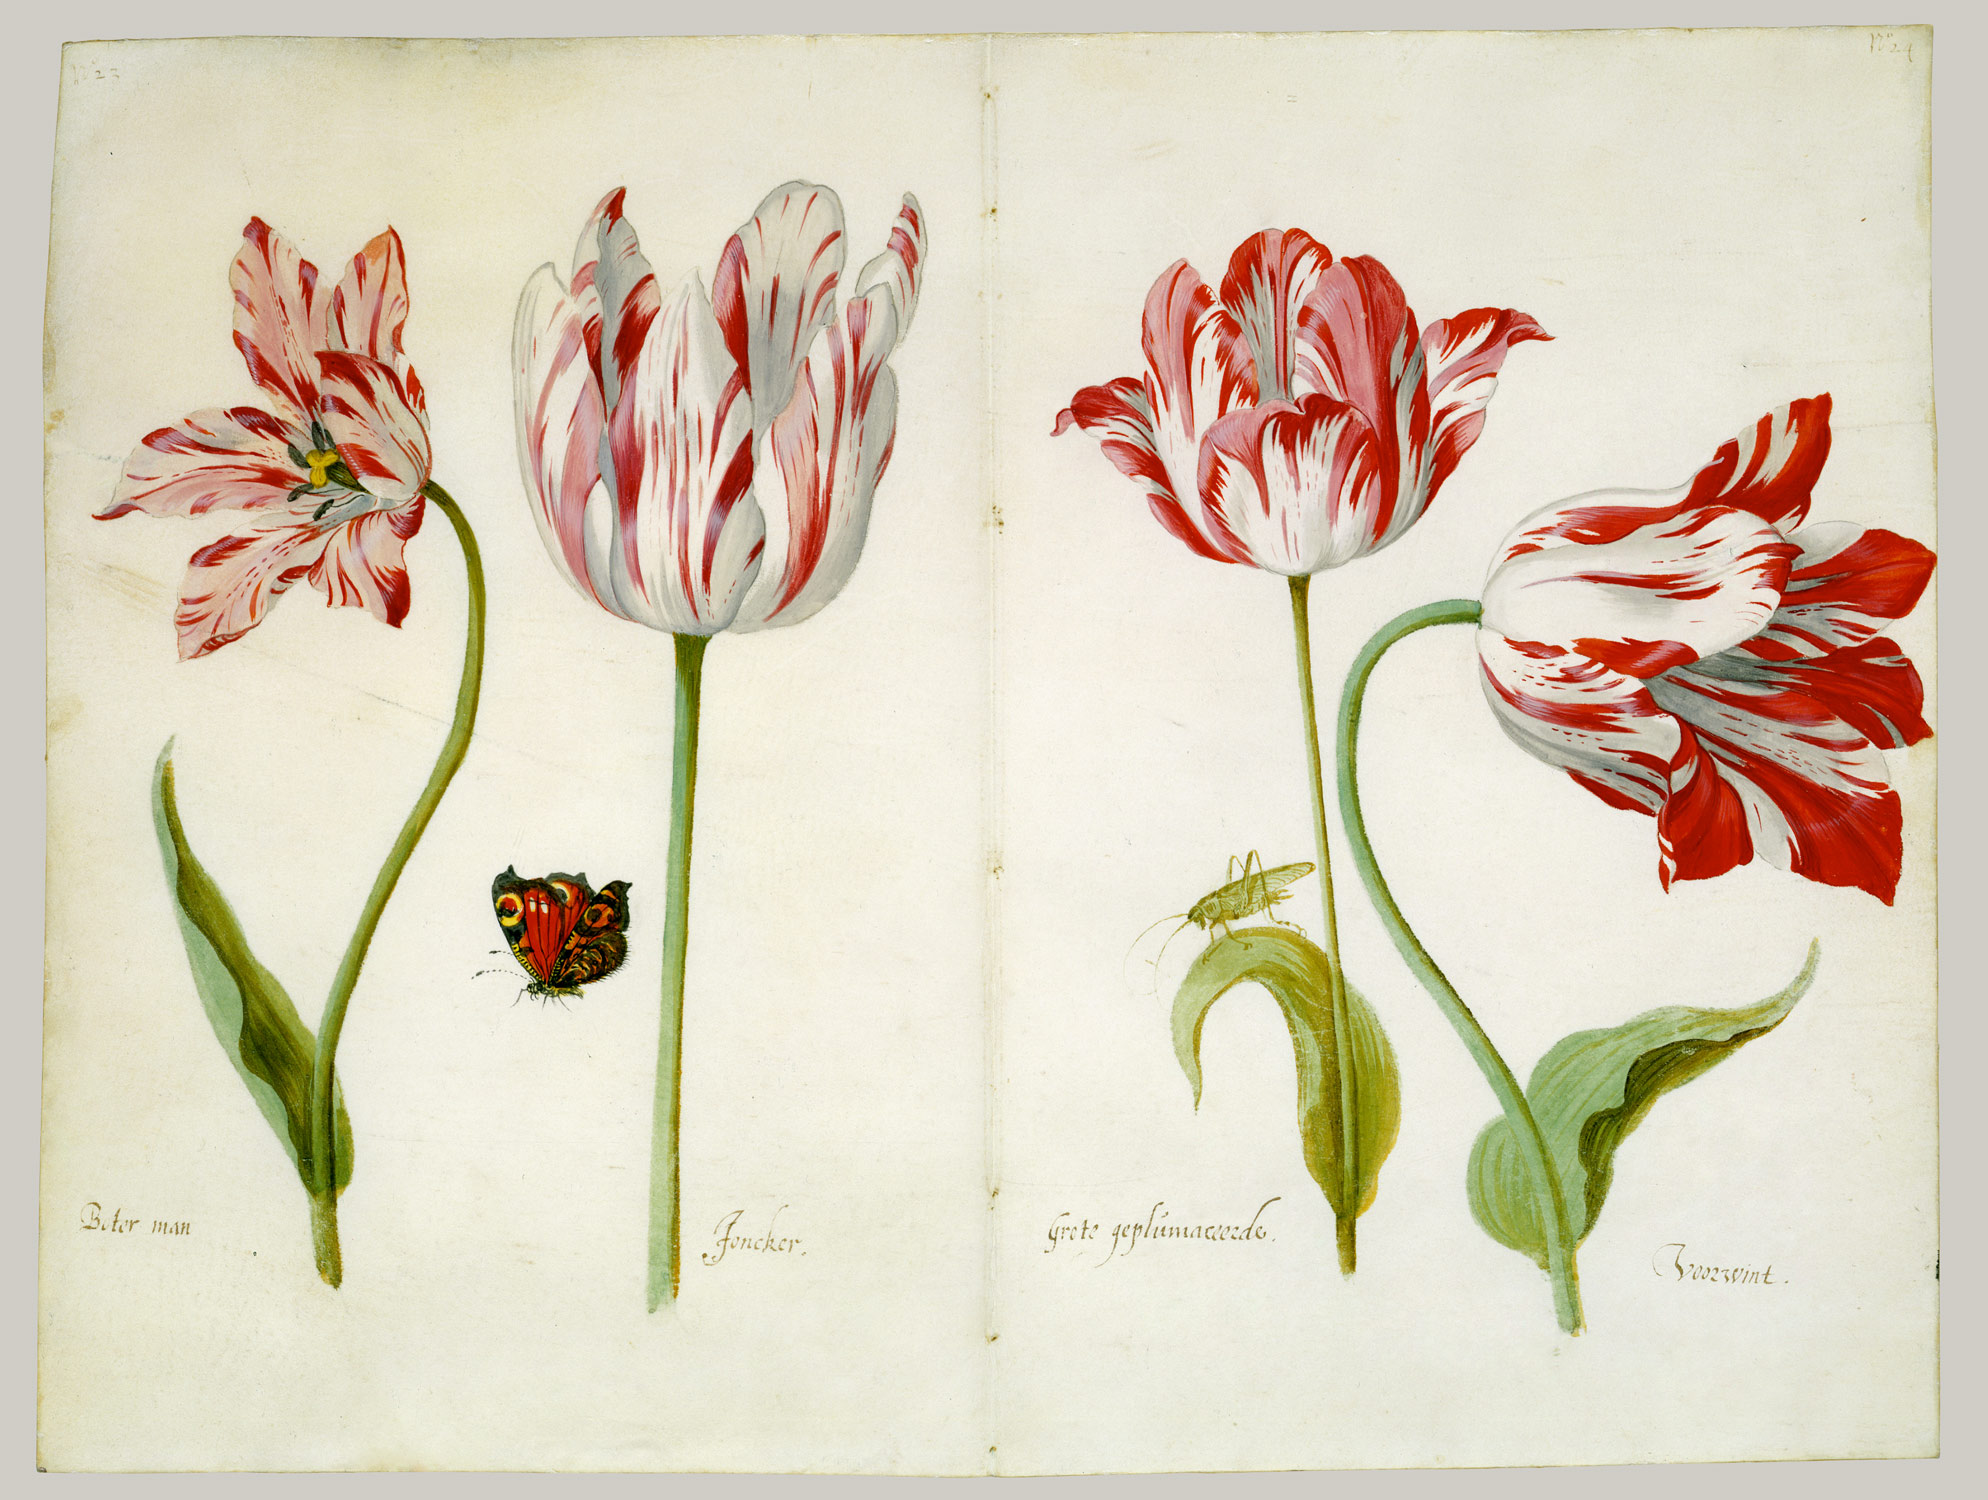 Four Tulips:  Boter man (Butter Man), Joncker (Nobleman), Grote geplumaceerde (The Great Plumed One), and Voorwint (With the Wind)